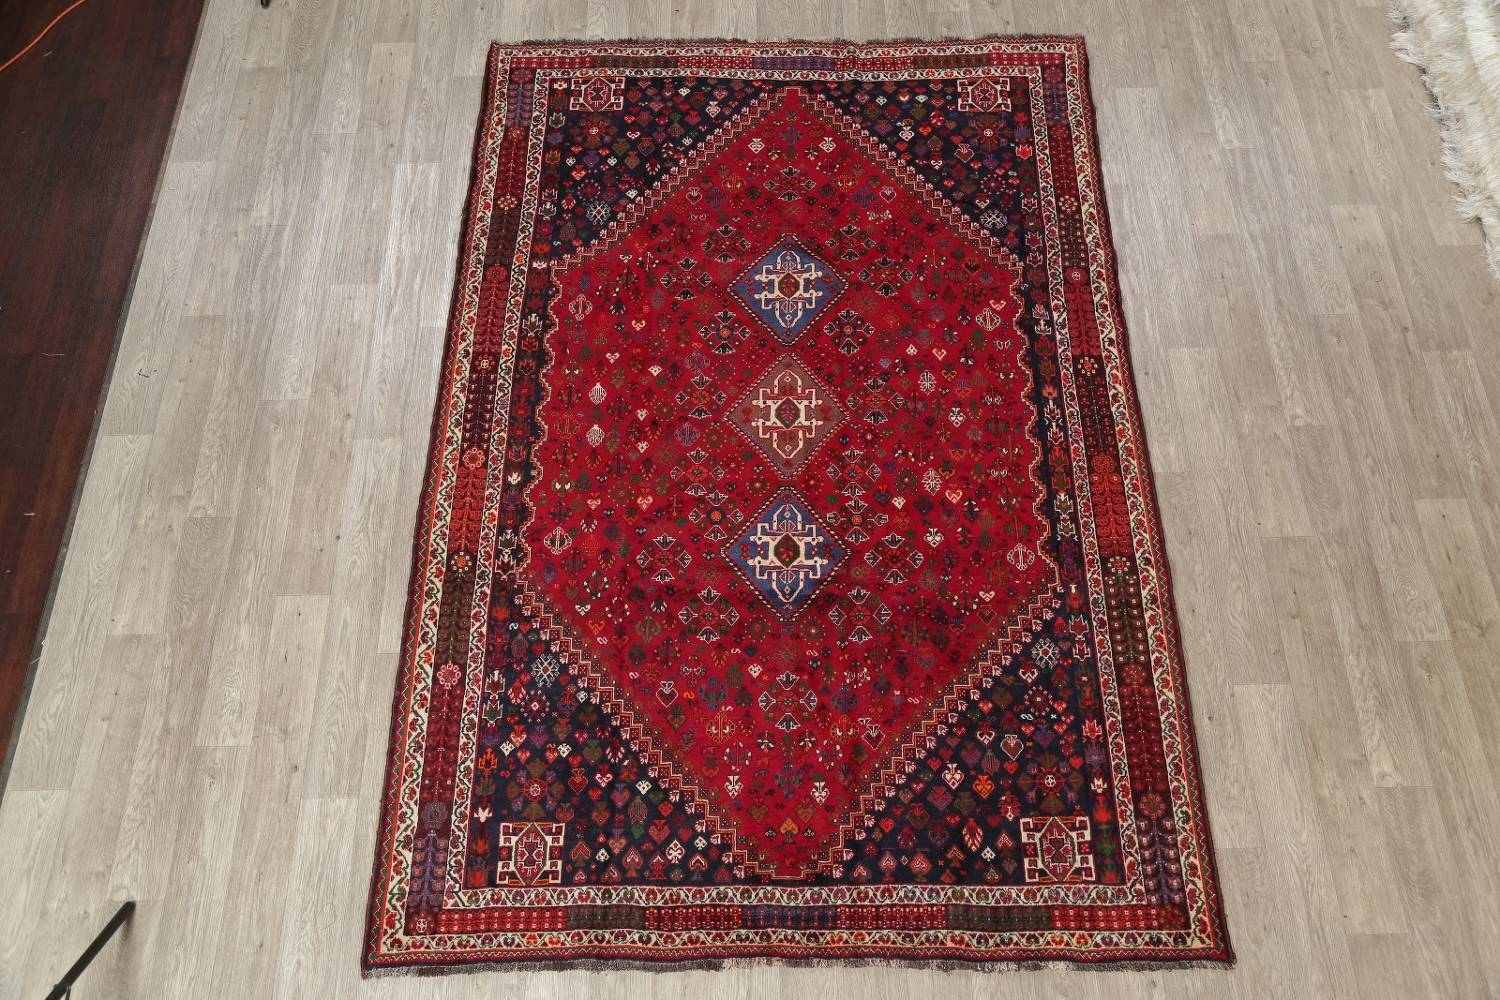 Vegetable Dye Tribal Abadeh Nafar Persian Hand-Knotted 6x9 Wool Area Rug image 21